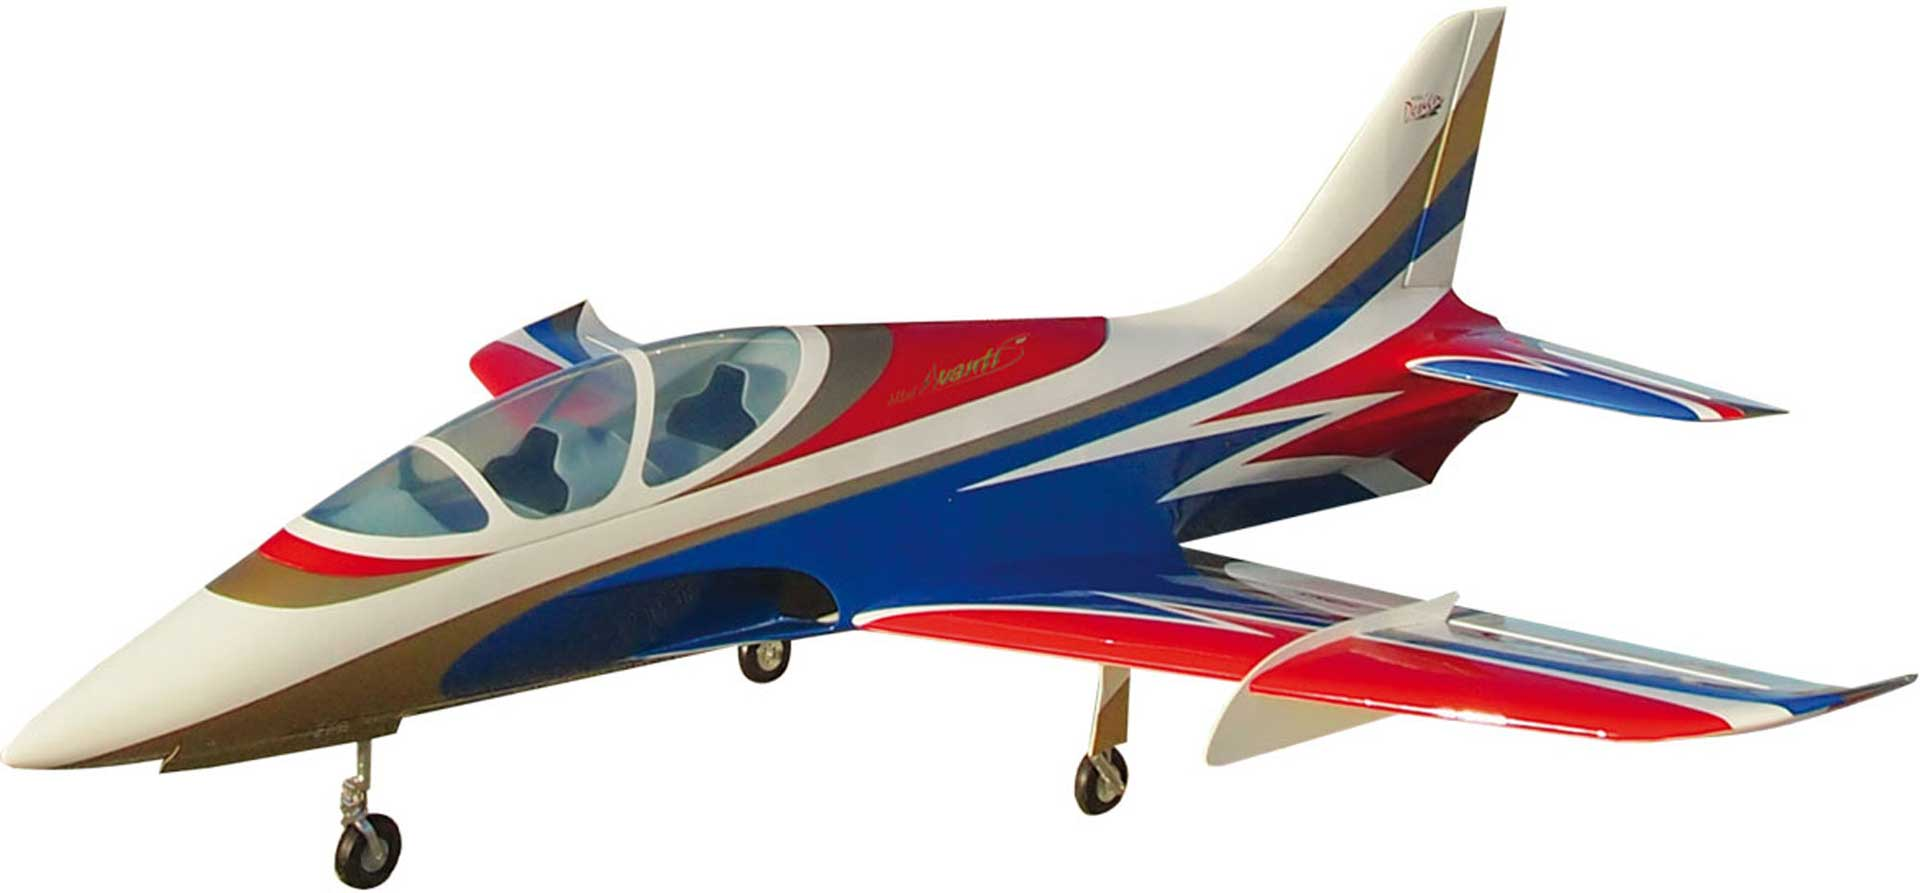 SEBART MINI AVANTI S V3 BLUE EDF JET  WITH RETRACTABLE LANDING GEAR AND 3 SERVOS FOR 90MM DUCTED FAN EDF